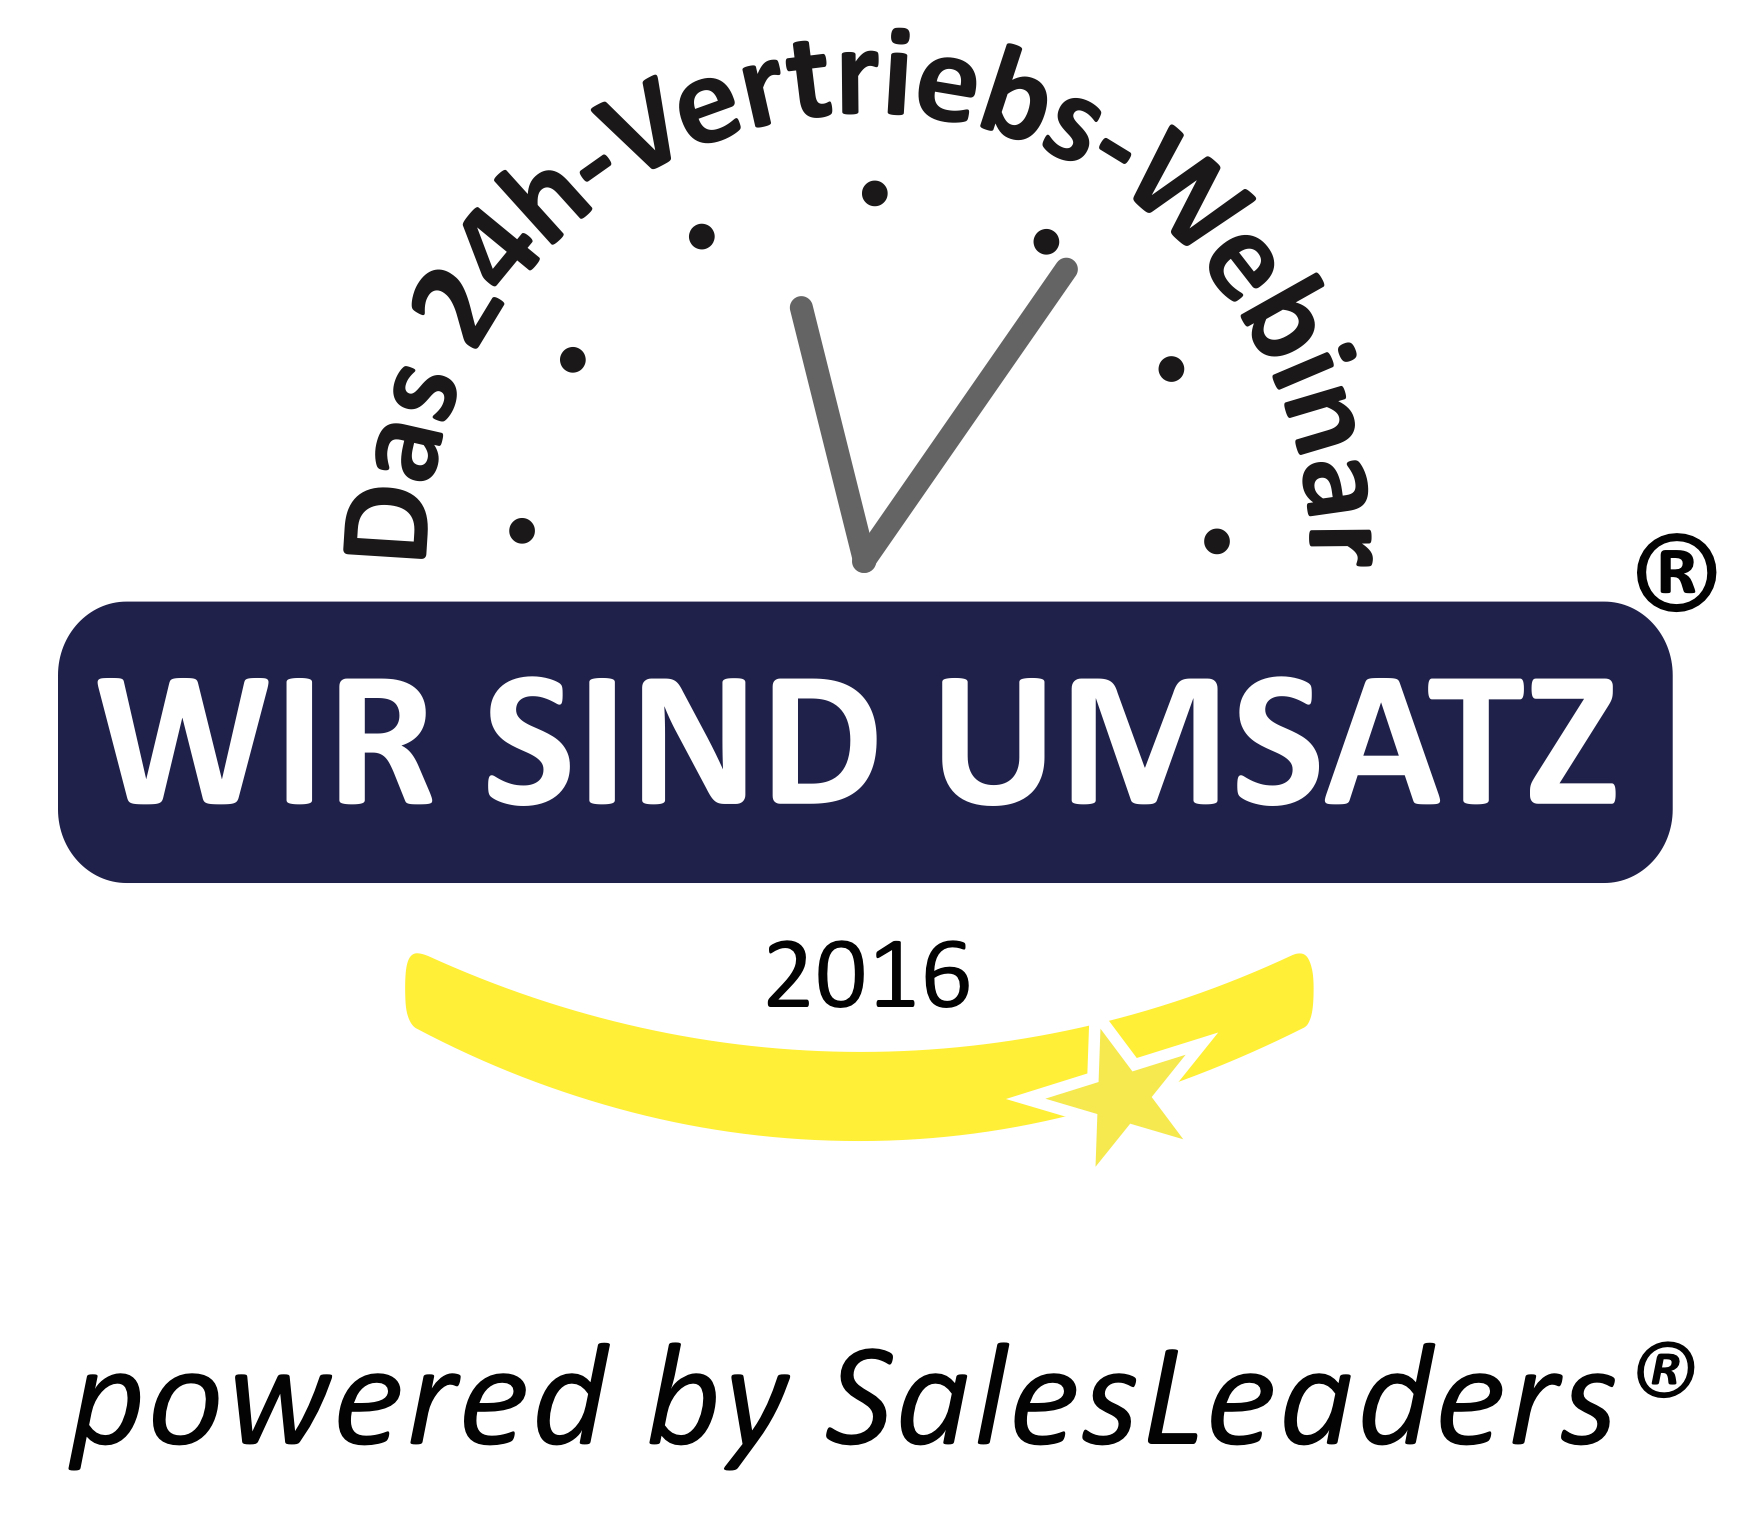 wsu2016-powered-by-salesleaders.jpg